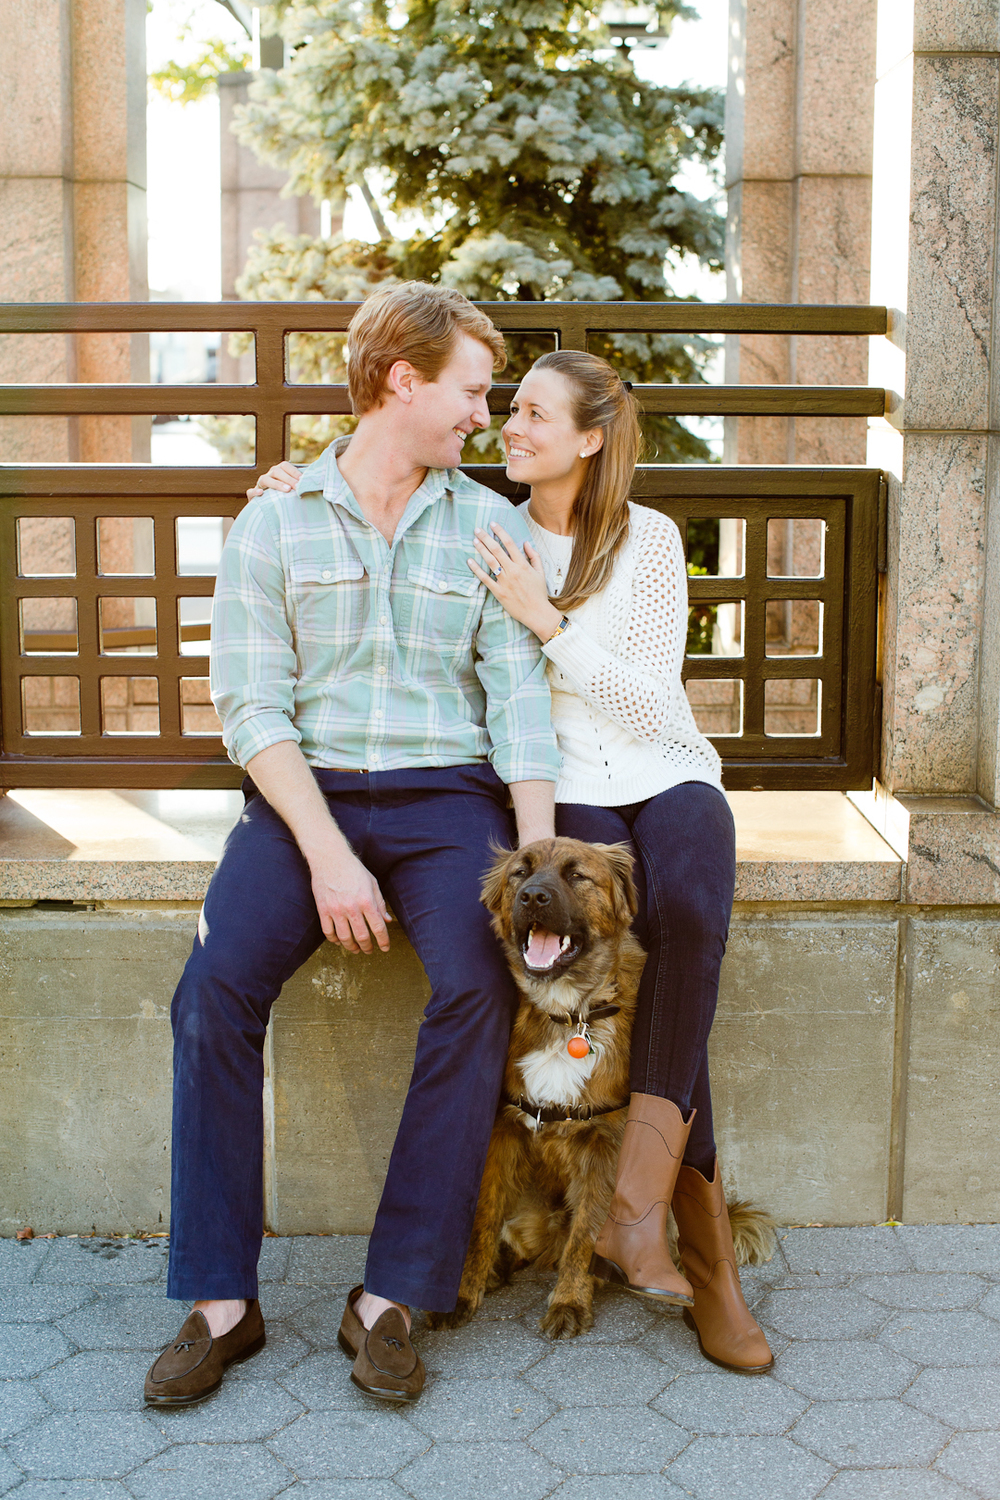 Melissa Kruse Photography - Megan & Tyler West Village Engagement Photos-110.jpg